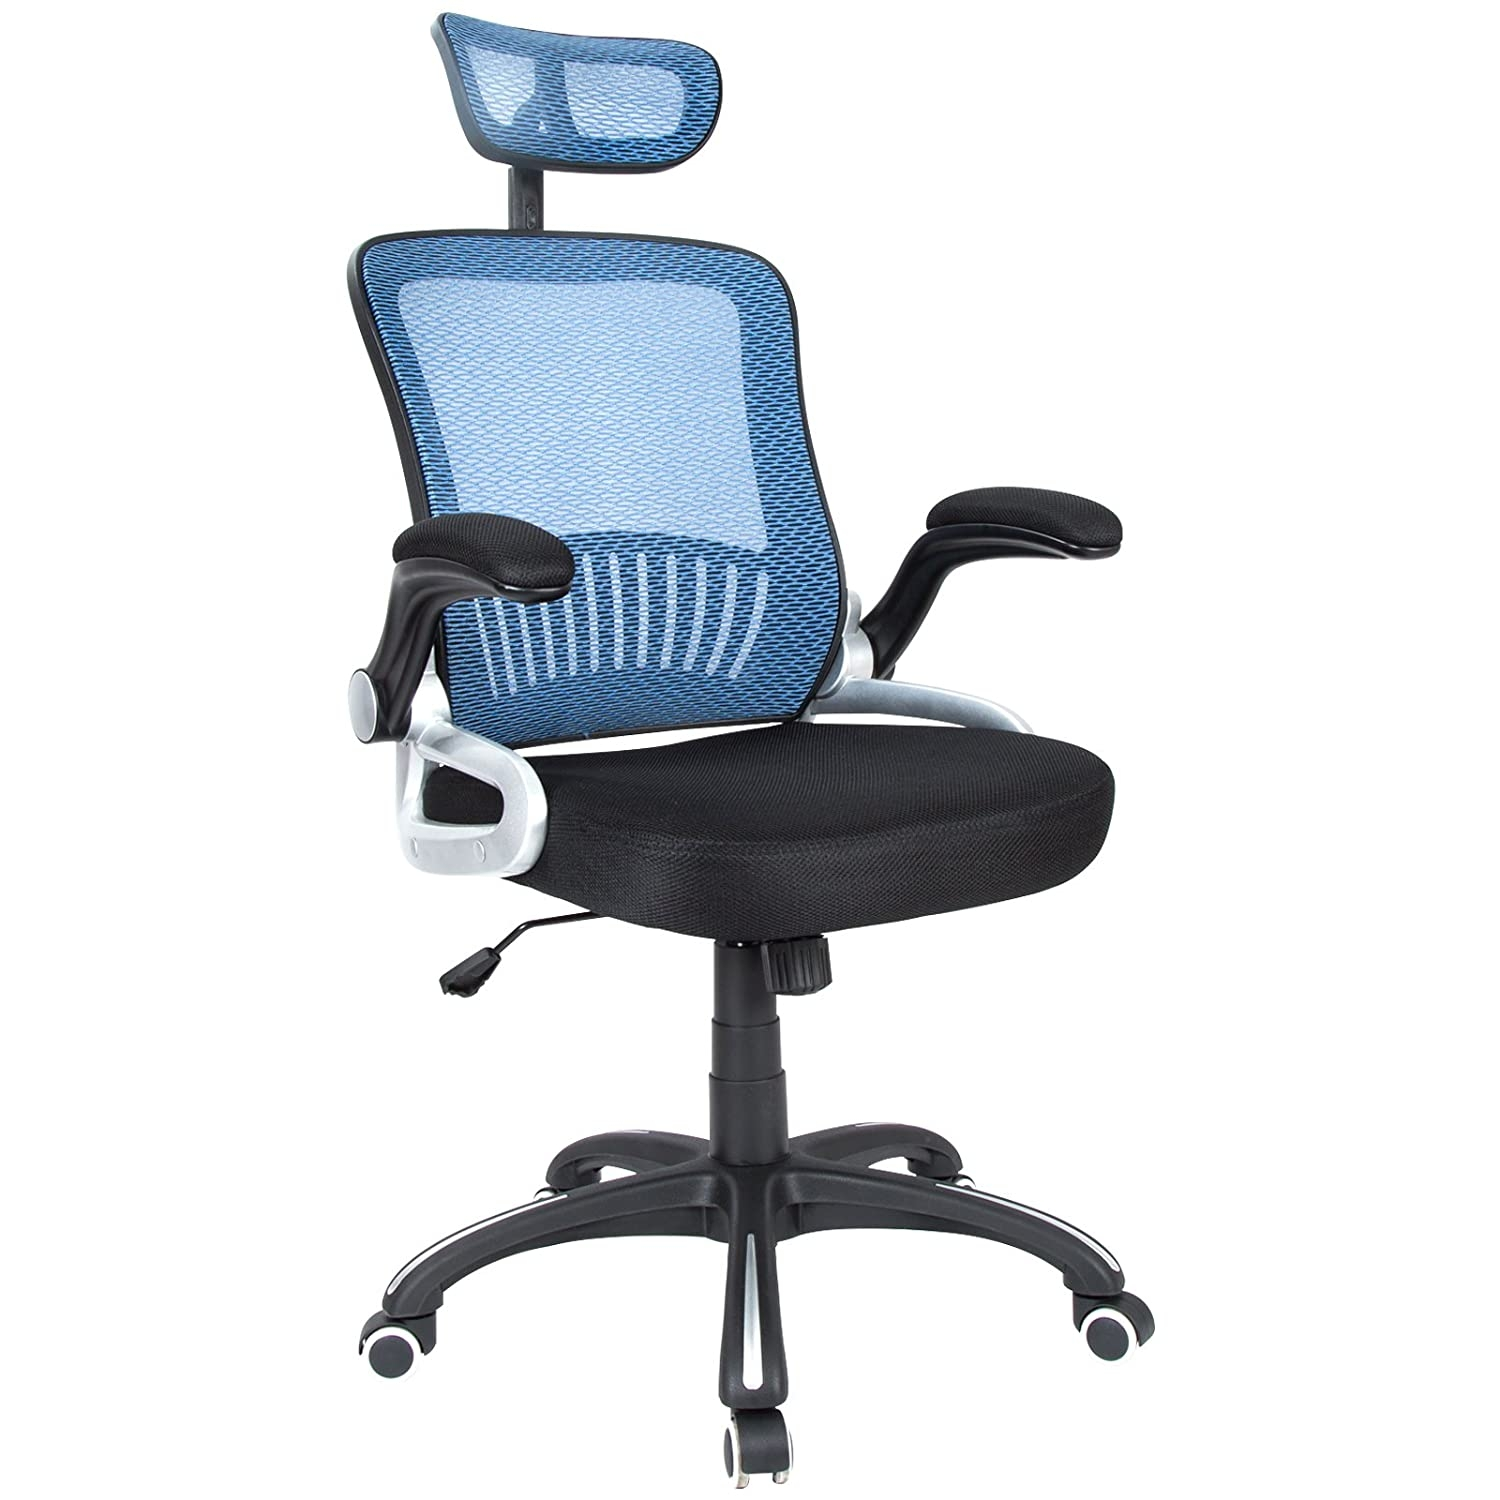 Charmant Hu0026L Office High Back Blue Mesh Executive U0026 Managerial Computer Desk Swivel Office  Chair With Headrest